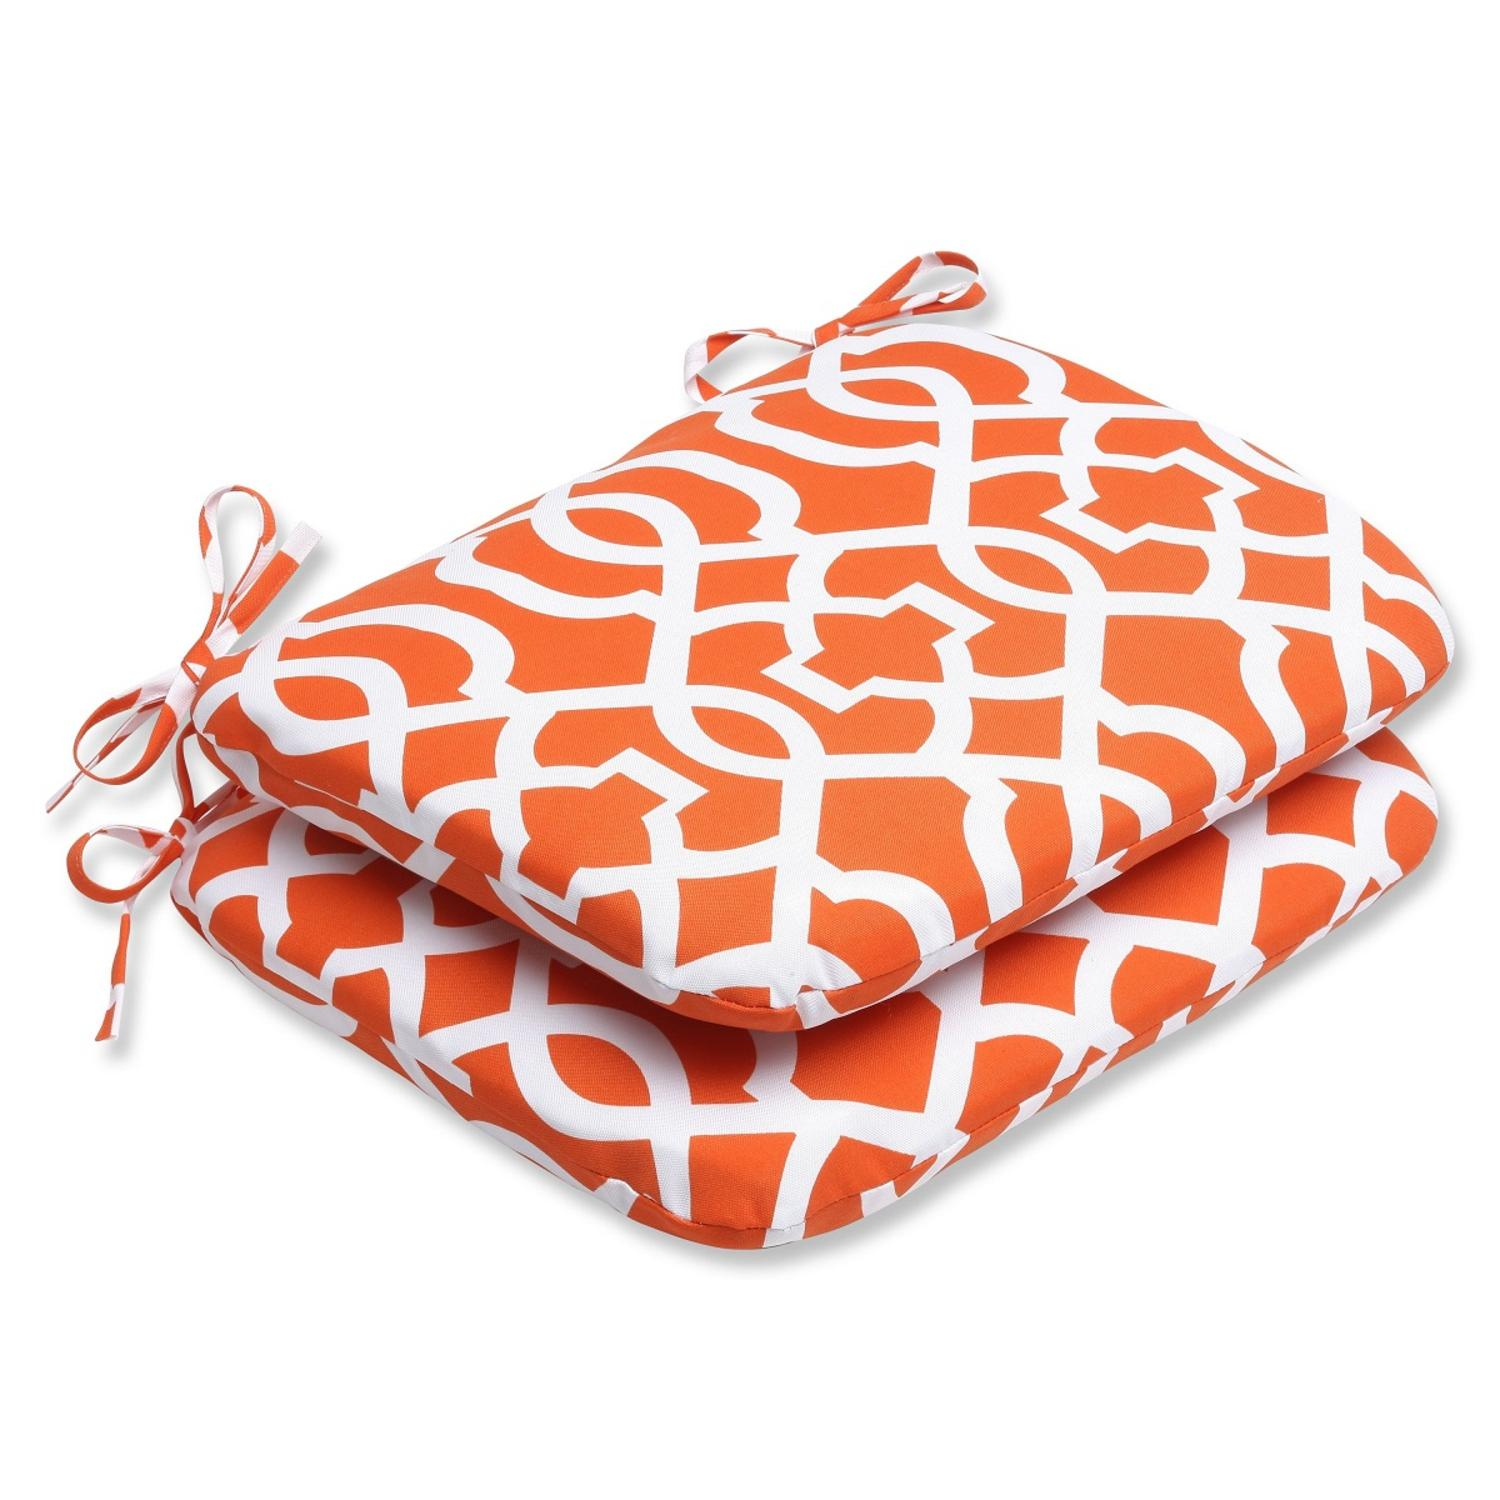 Set of 2 Labirinto Geometrico Orange and White Outdoor Patio Rounded Chair Cushions 18.5""